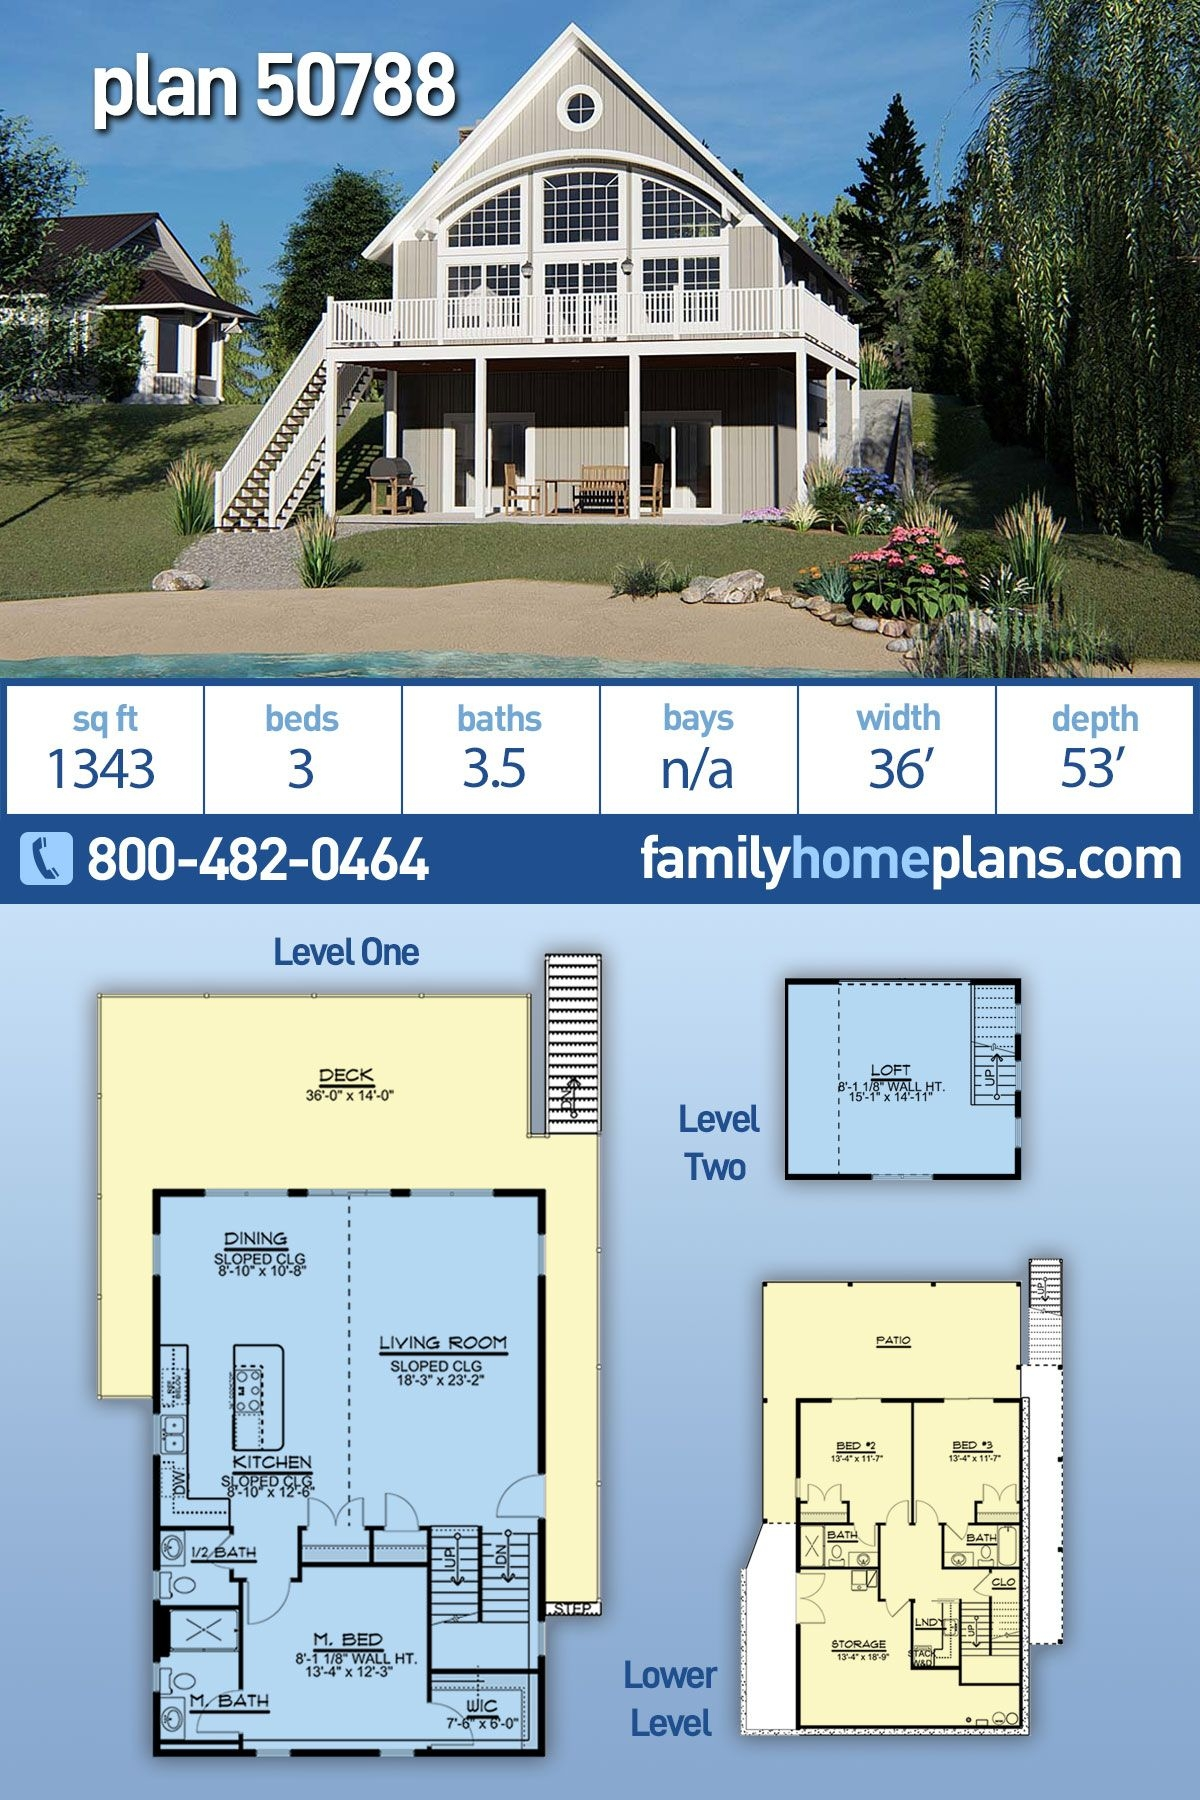 Delightful Mountain Home Plans Sloping Lot On Awe-inspiring Coastal Style House Plan with 3 Bed 4 Bath On Mountain Home Plans Sloping Lot